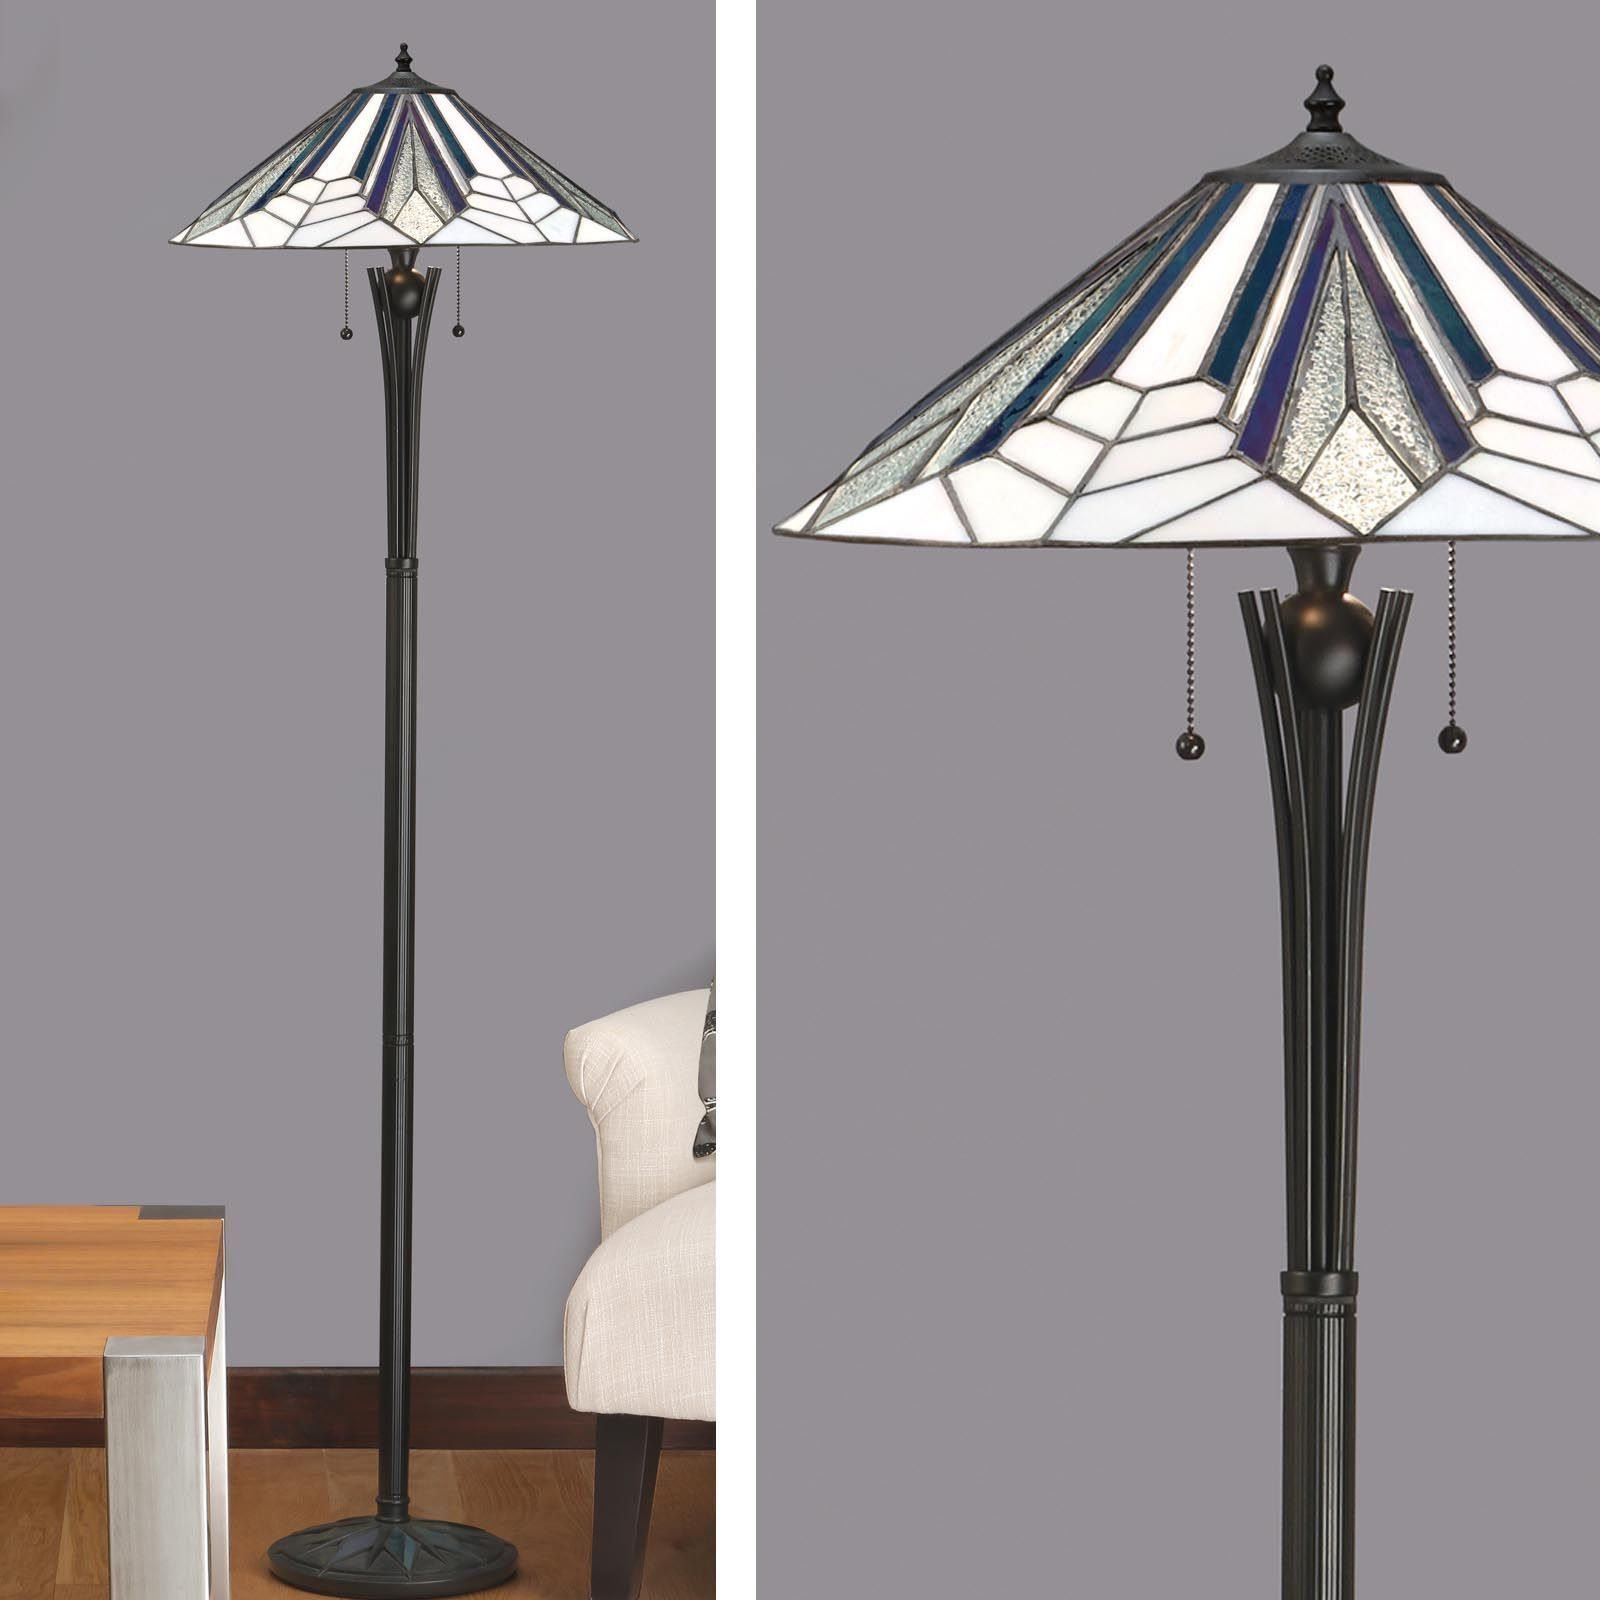 Astoria floor lamp art deco floor lamp tiffany style for Art deco style lamp